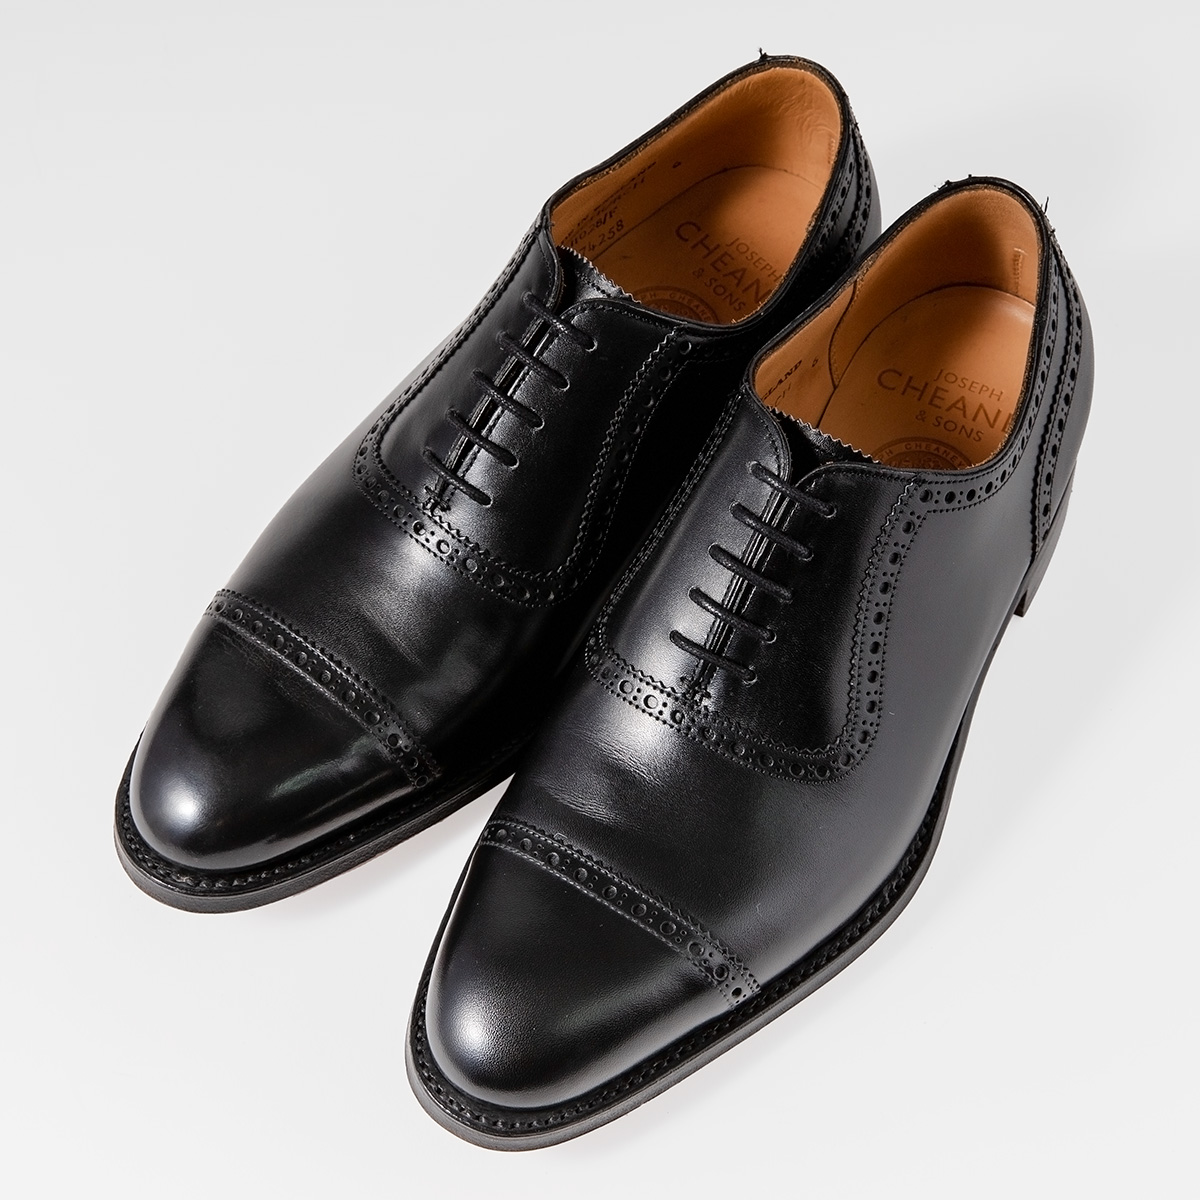 JOSEPH CHEANEY CITY COLLECTION FENCHURCH